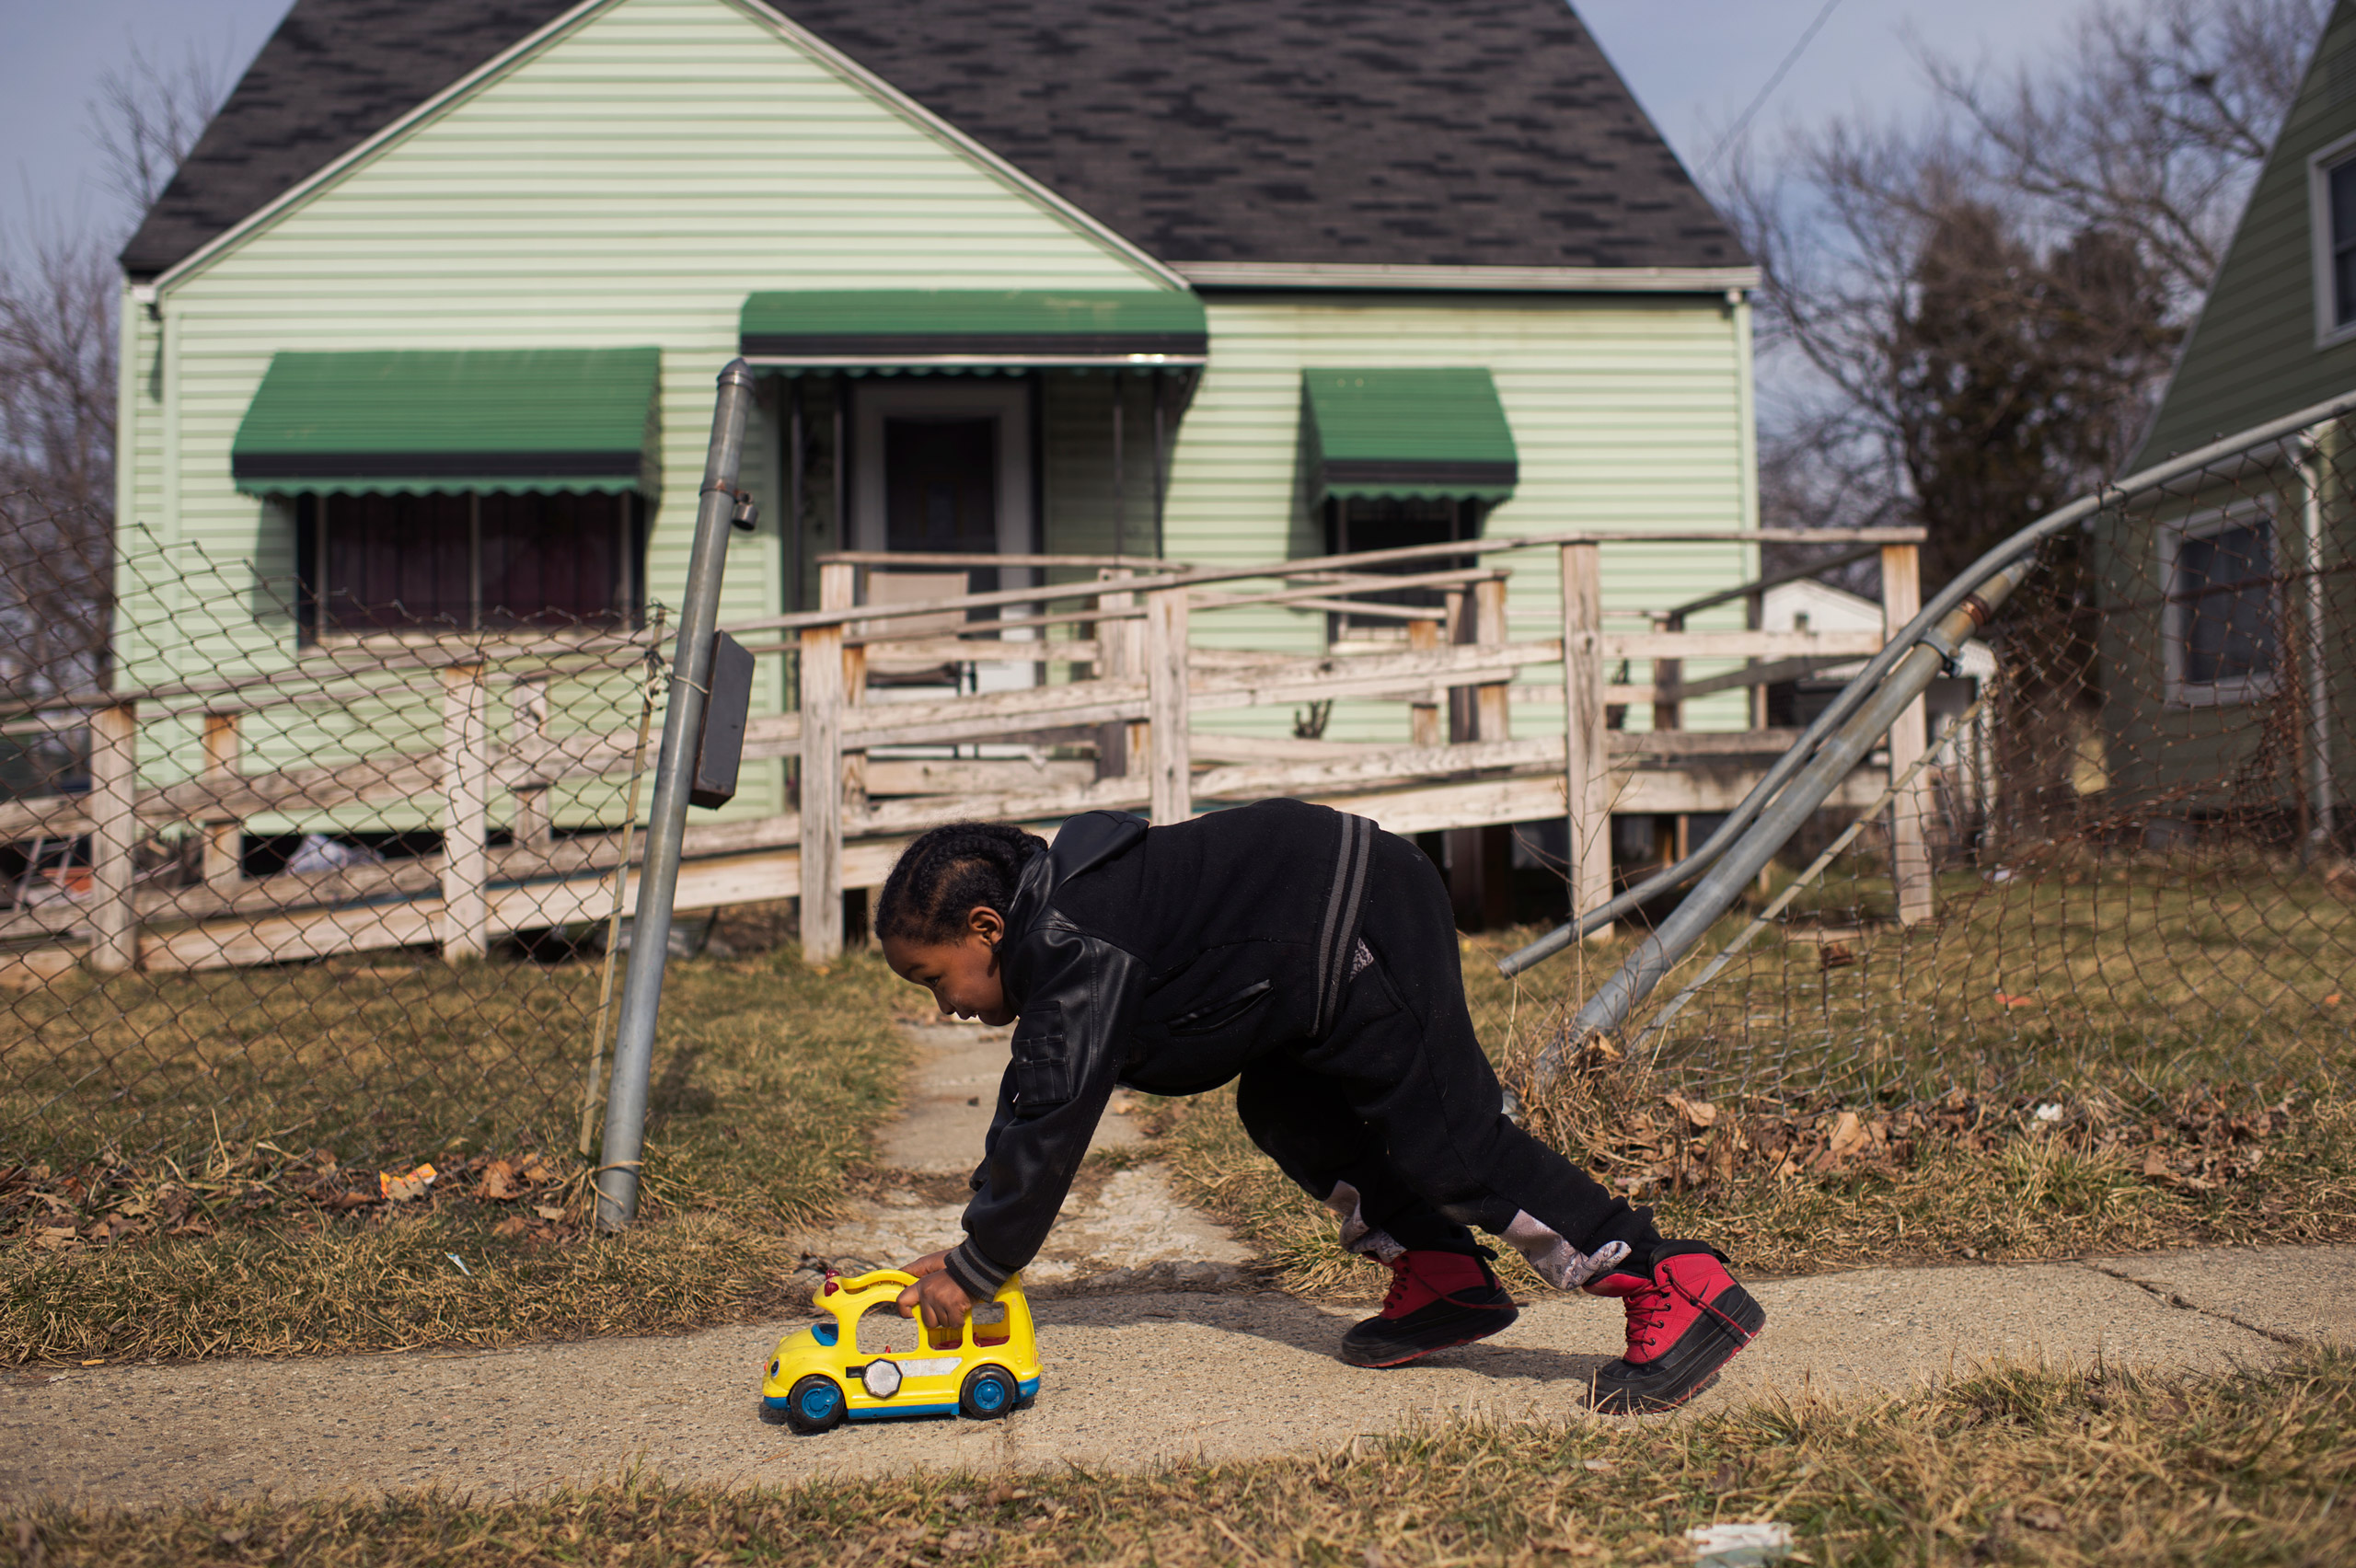 Davarious Griffin, 5, who has had elevated levels of lead detected in his blood, plays outside of his house on Ridgeway Avenue in Flint, Mich., on Feb. 23, 2016.